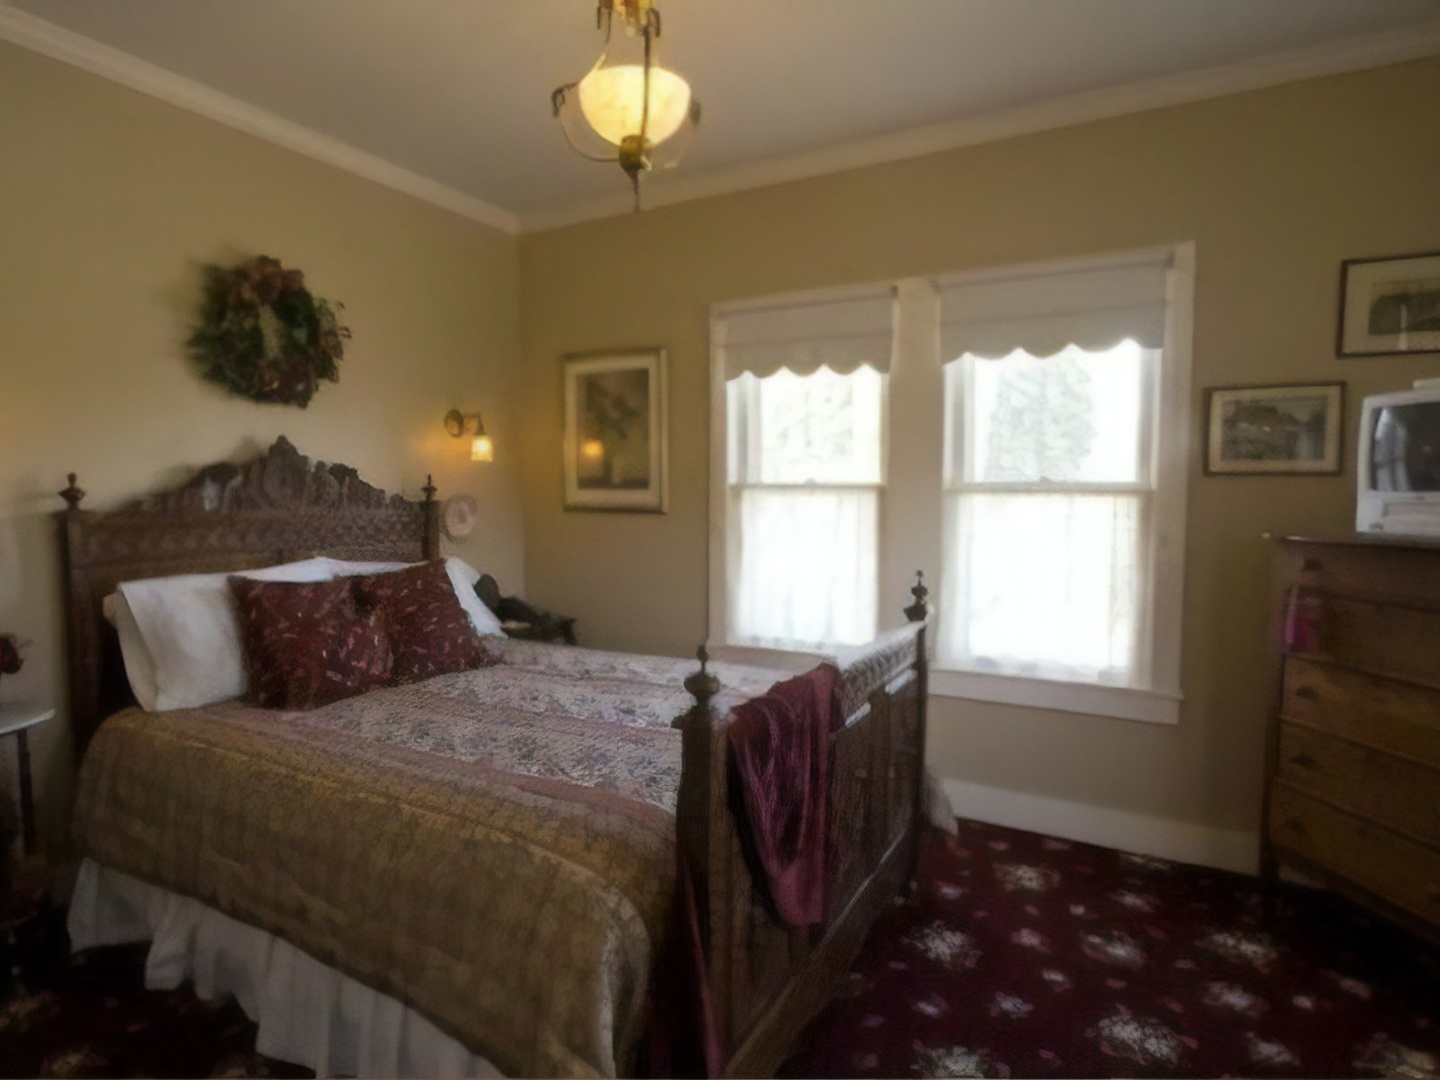 A bedroom with a large bed in a hotel room at Jacksonville's Magnolia Inn.